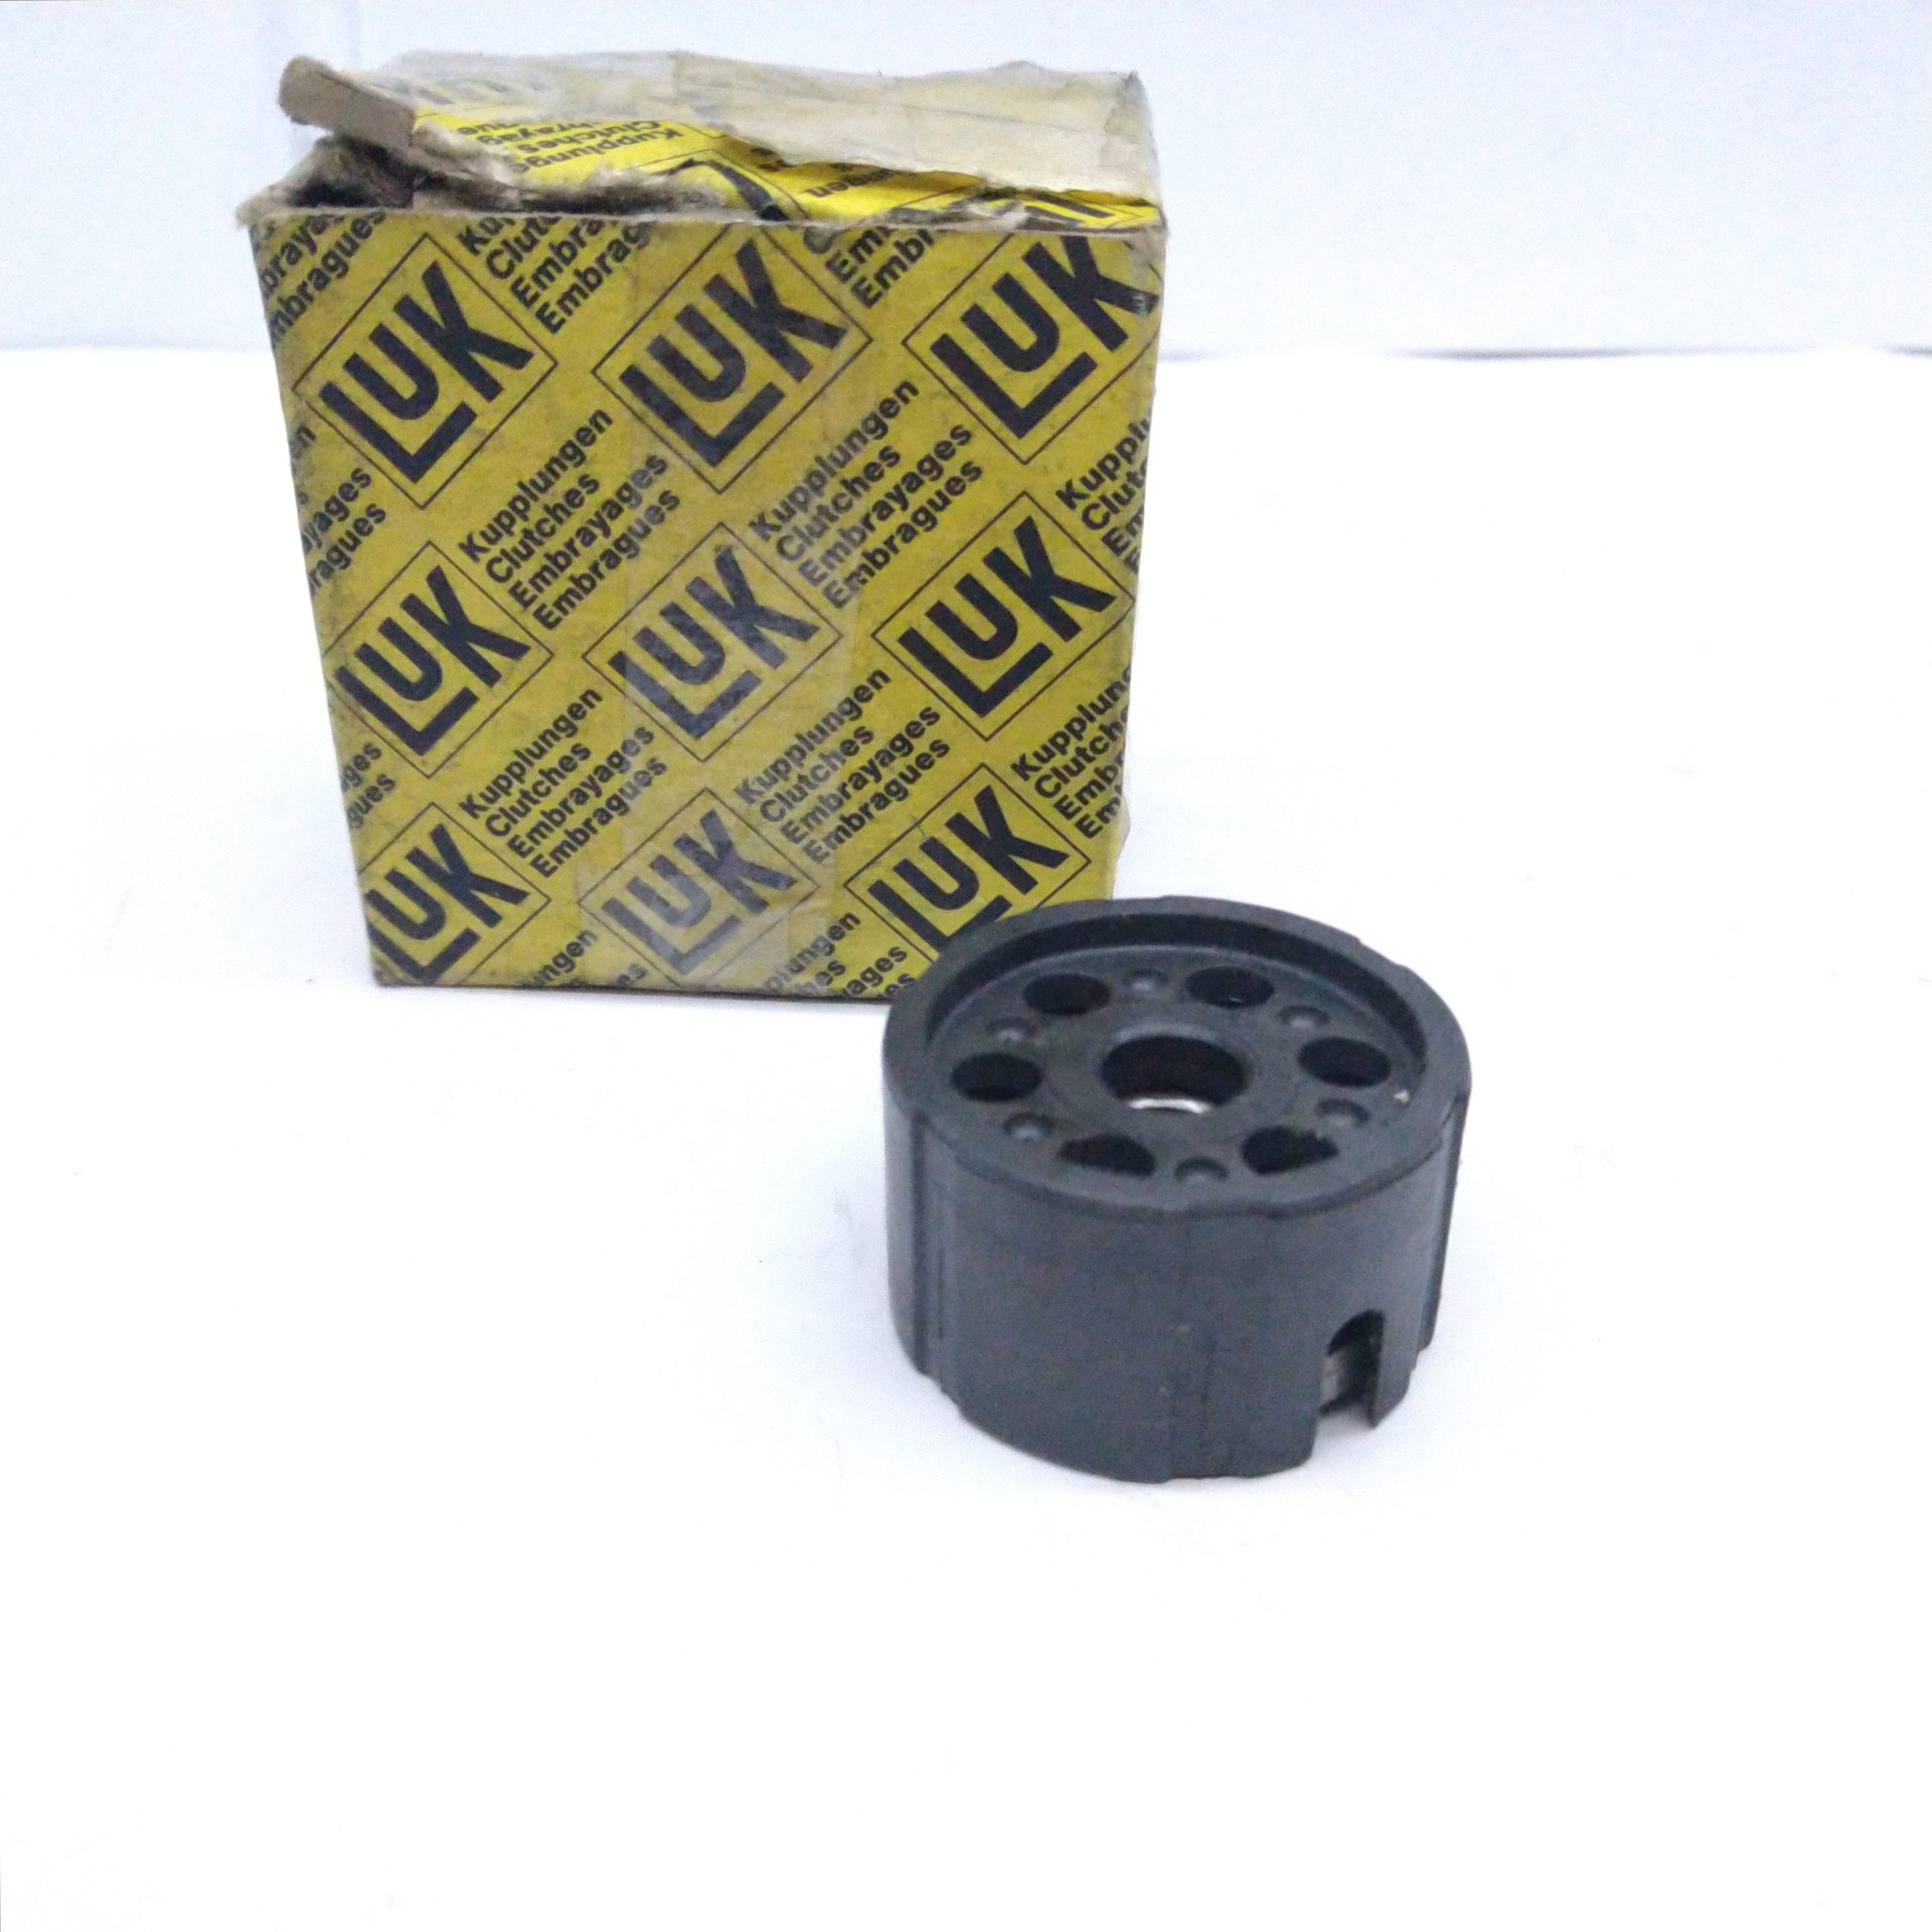 THRUST RELEASE CLUTCH AUDI A3 - SEAT IBIZA - VW GOLF LUK FOR 020141165